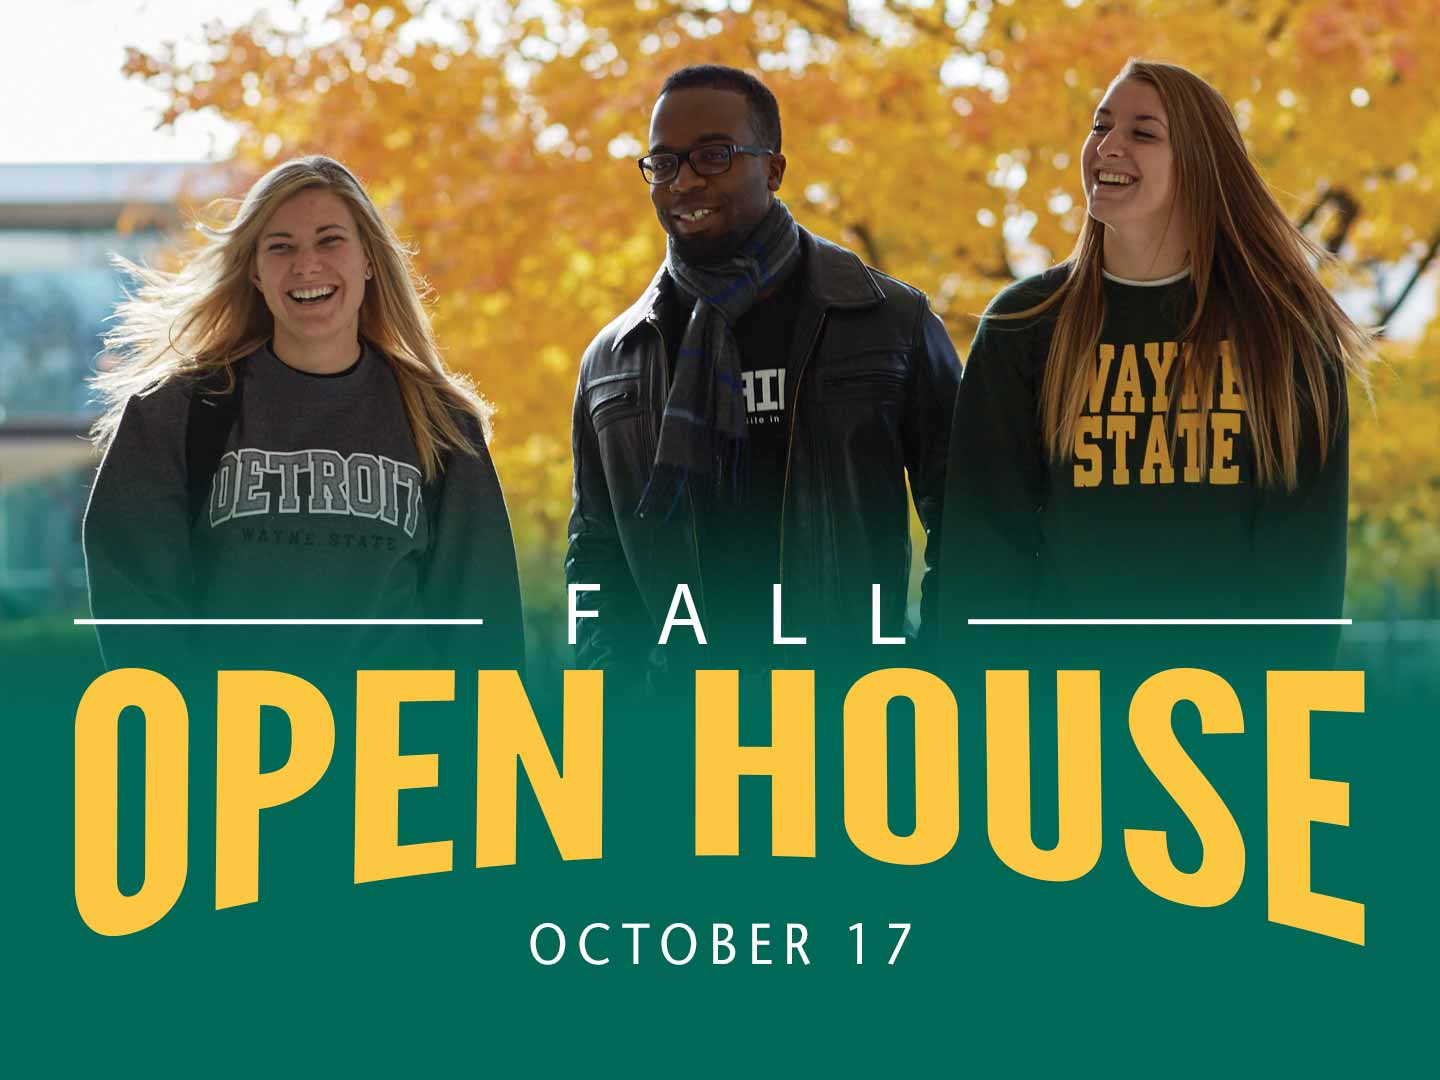 Explore your academic interests and learn more about Wayne State.